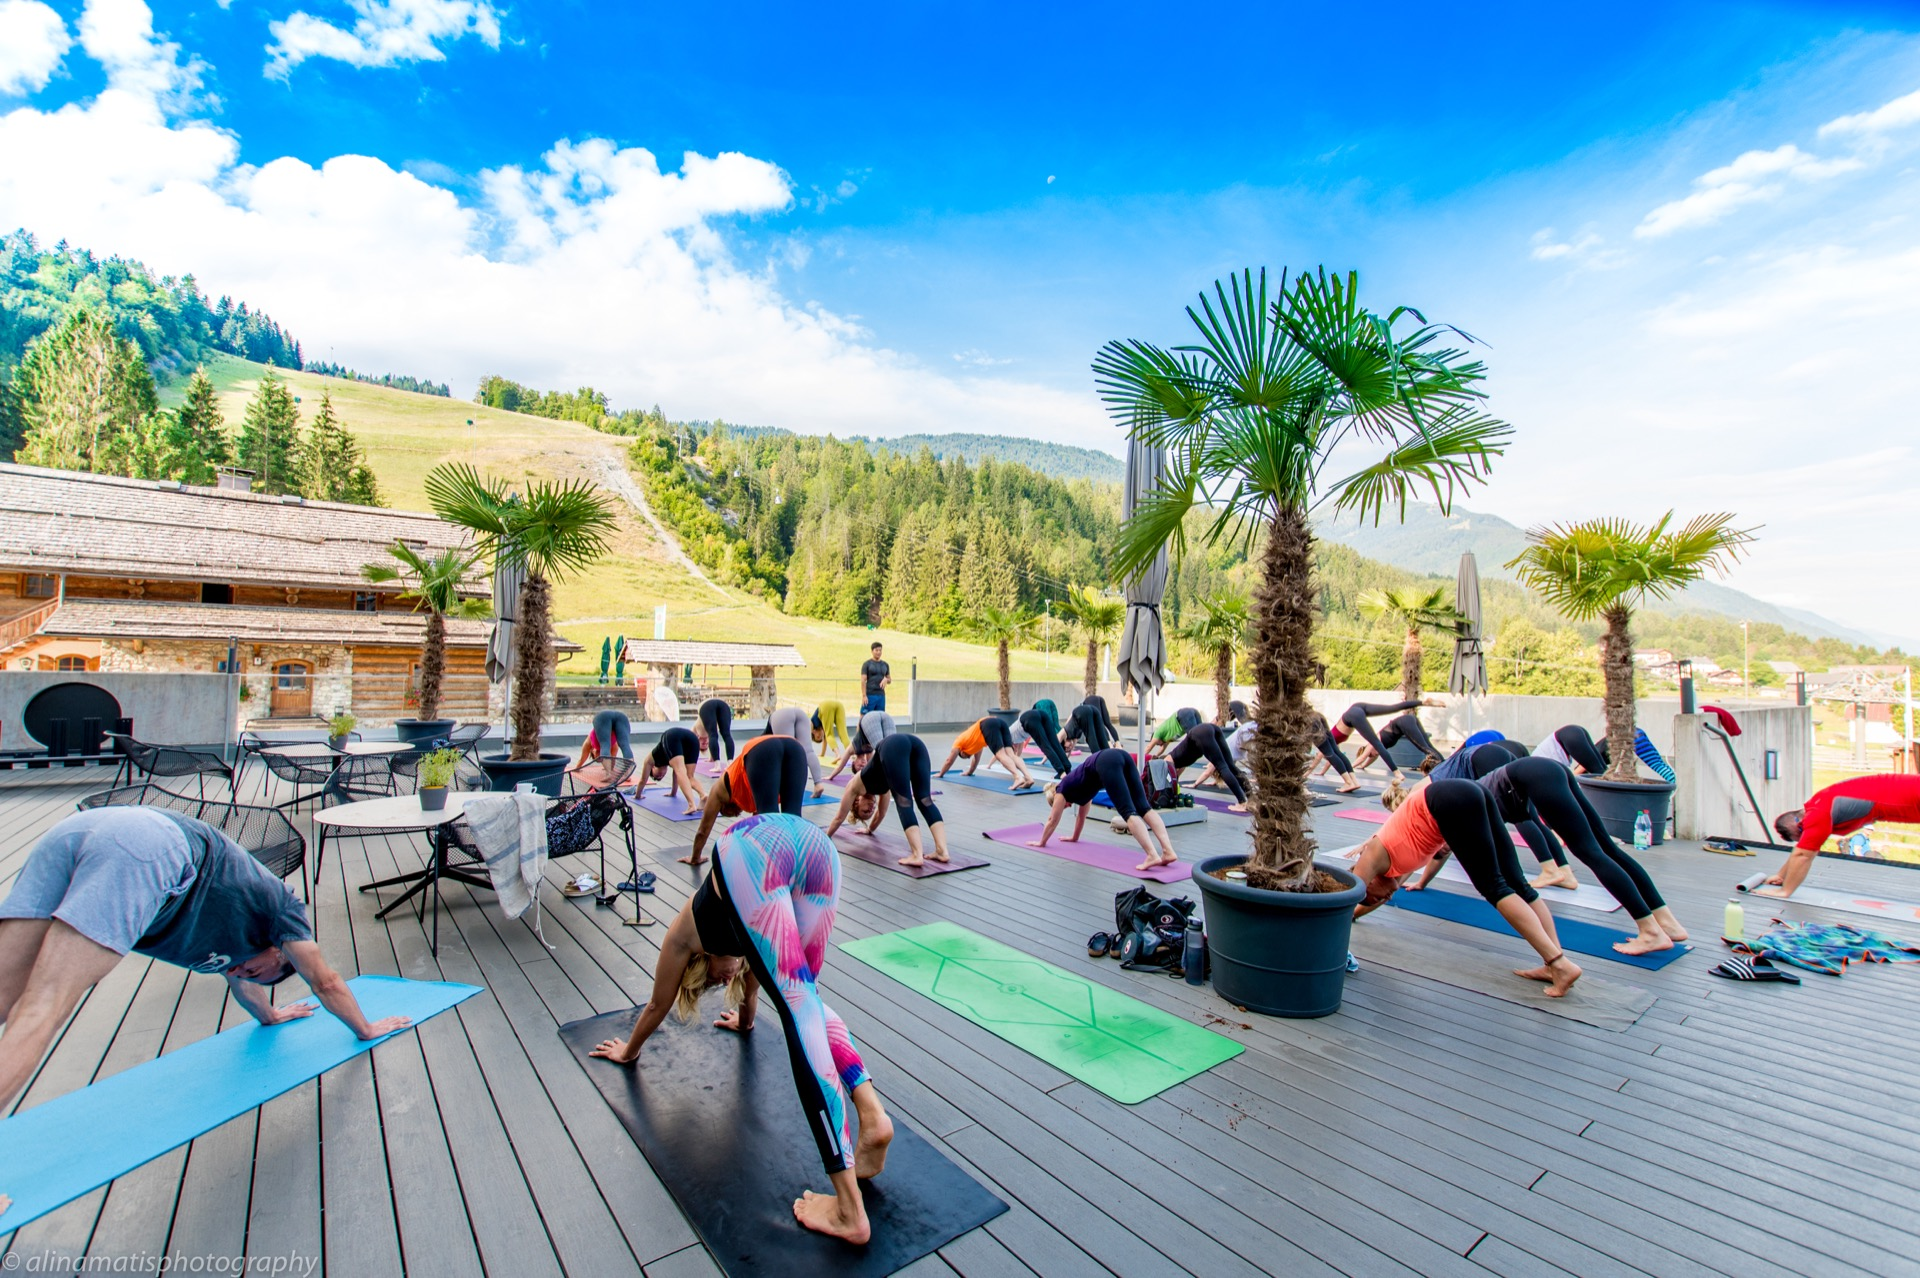 Hie-Kim-Friends-2018-Yoga-Retreat-Alina-Matis-Photography-048 - Hie Kim Yoga - Yoga Retreat - Yoga Workshops und Reisen